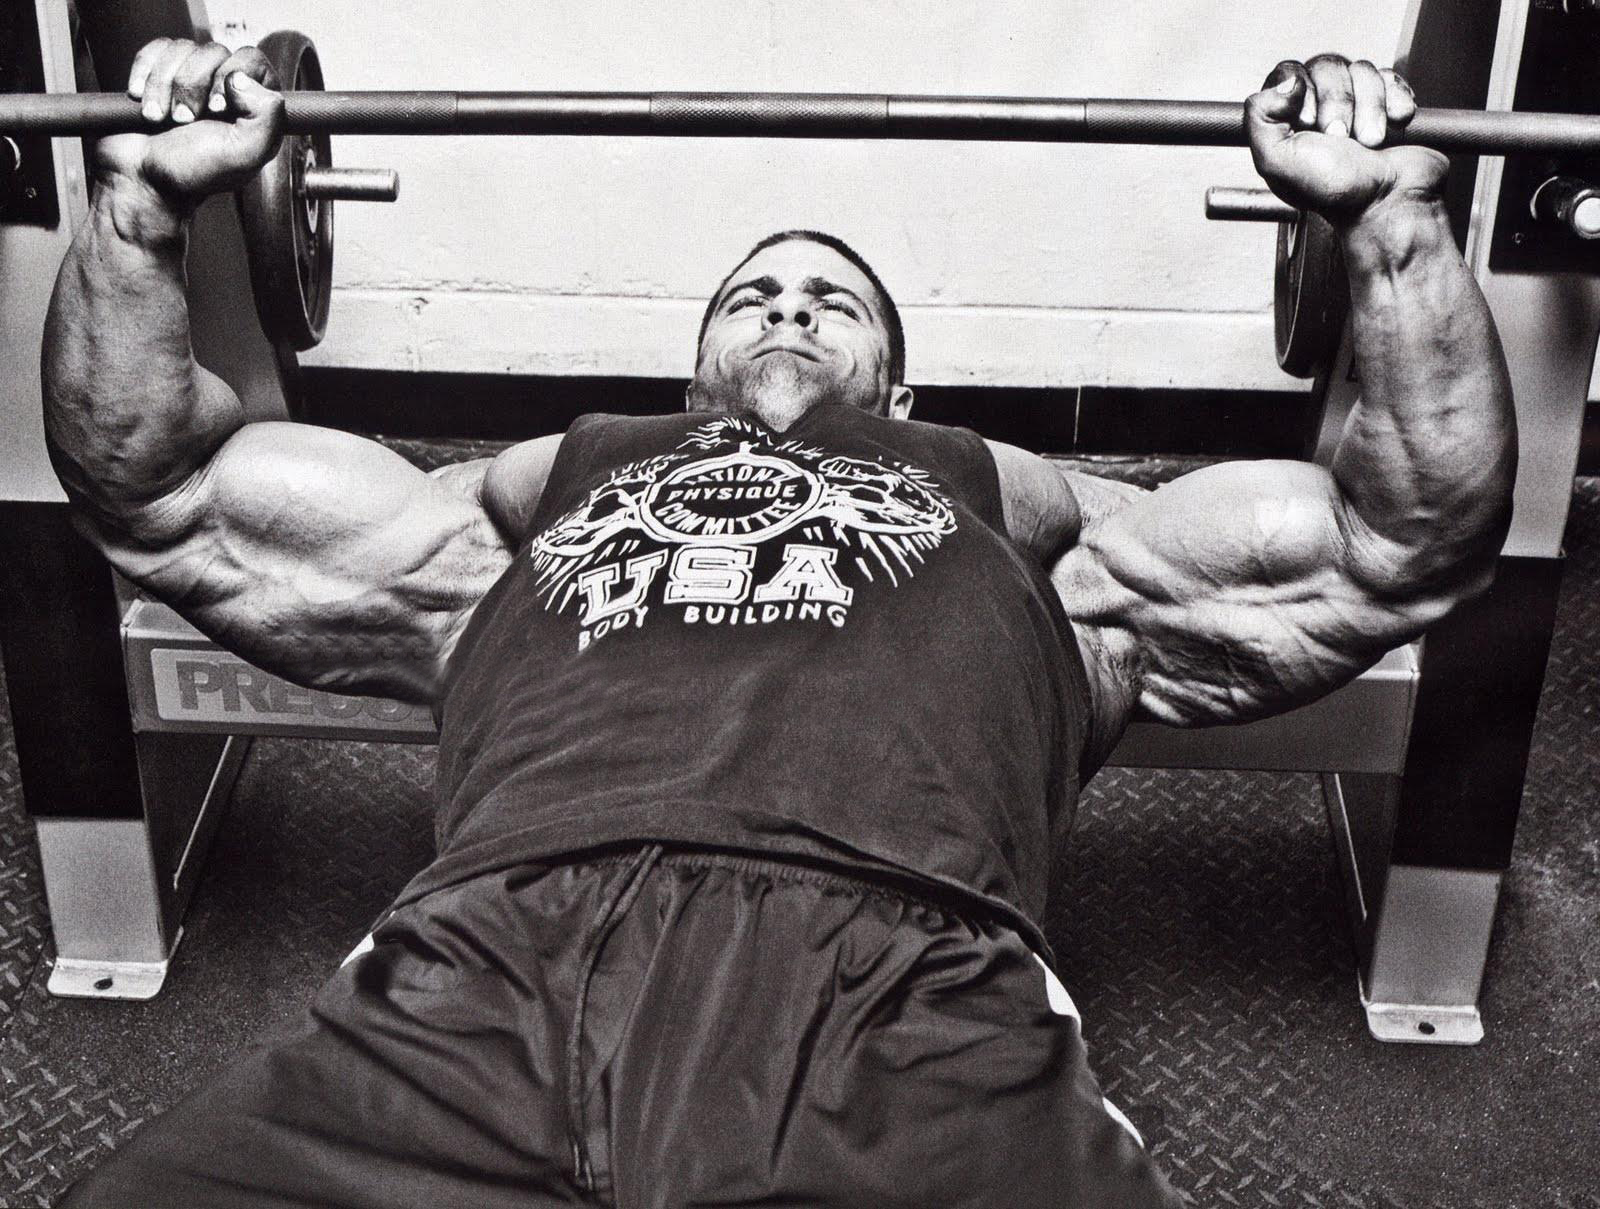 Chest workout tips and exercise bodybuilding and fitness zone